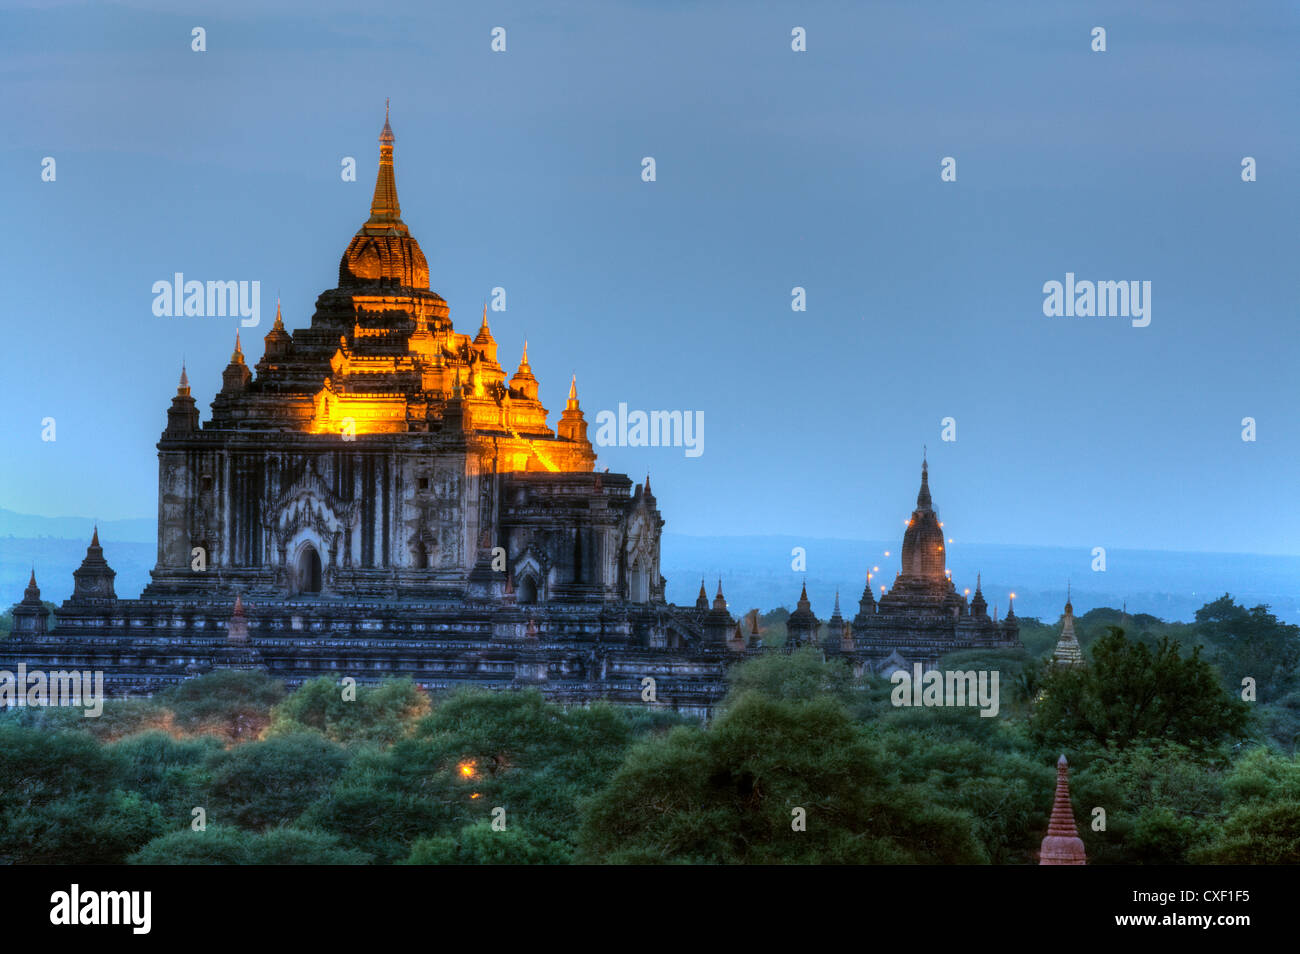 View of THE THATBYINNYU TEMPLE from the SHWESANDAW TEMPLE or PAYA at sunset - BAGAN, MYANMAR Stock Photo